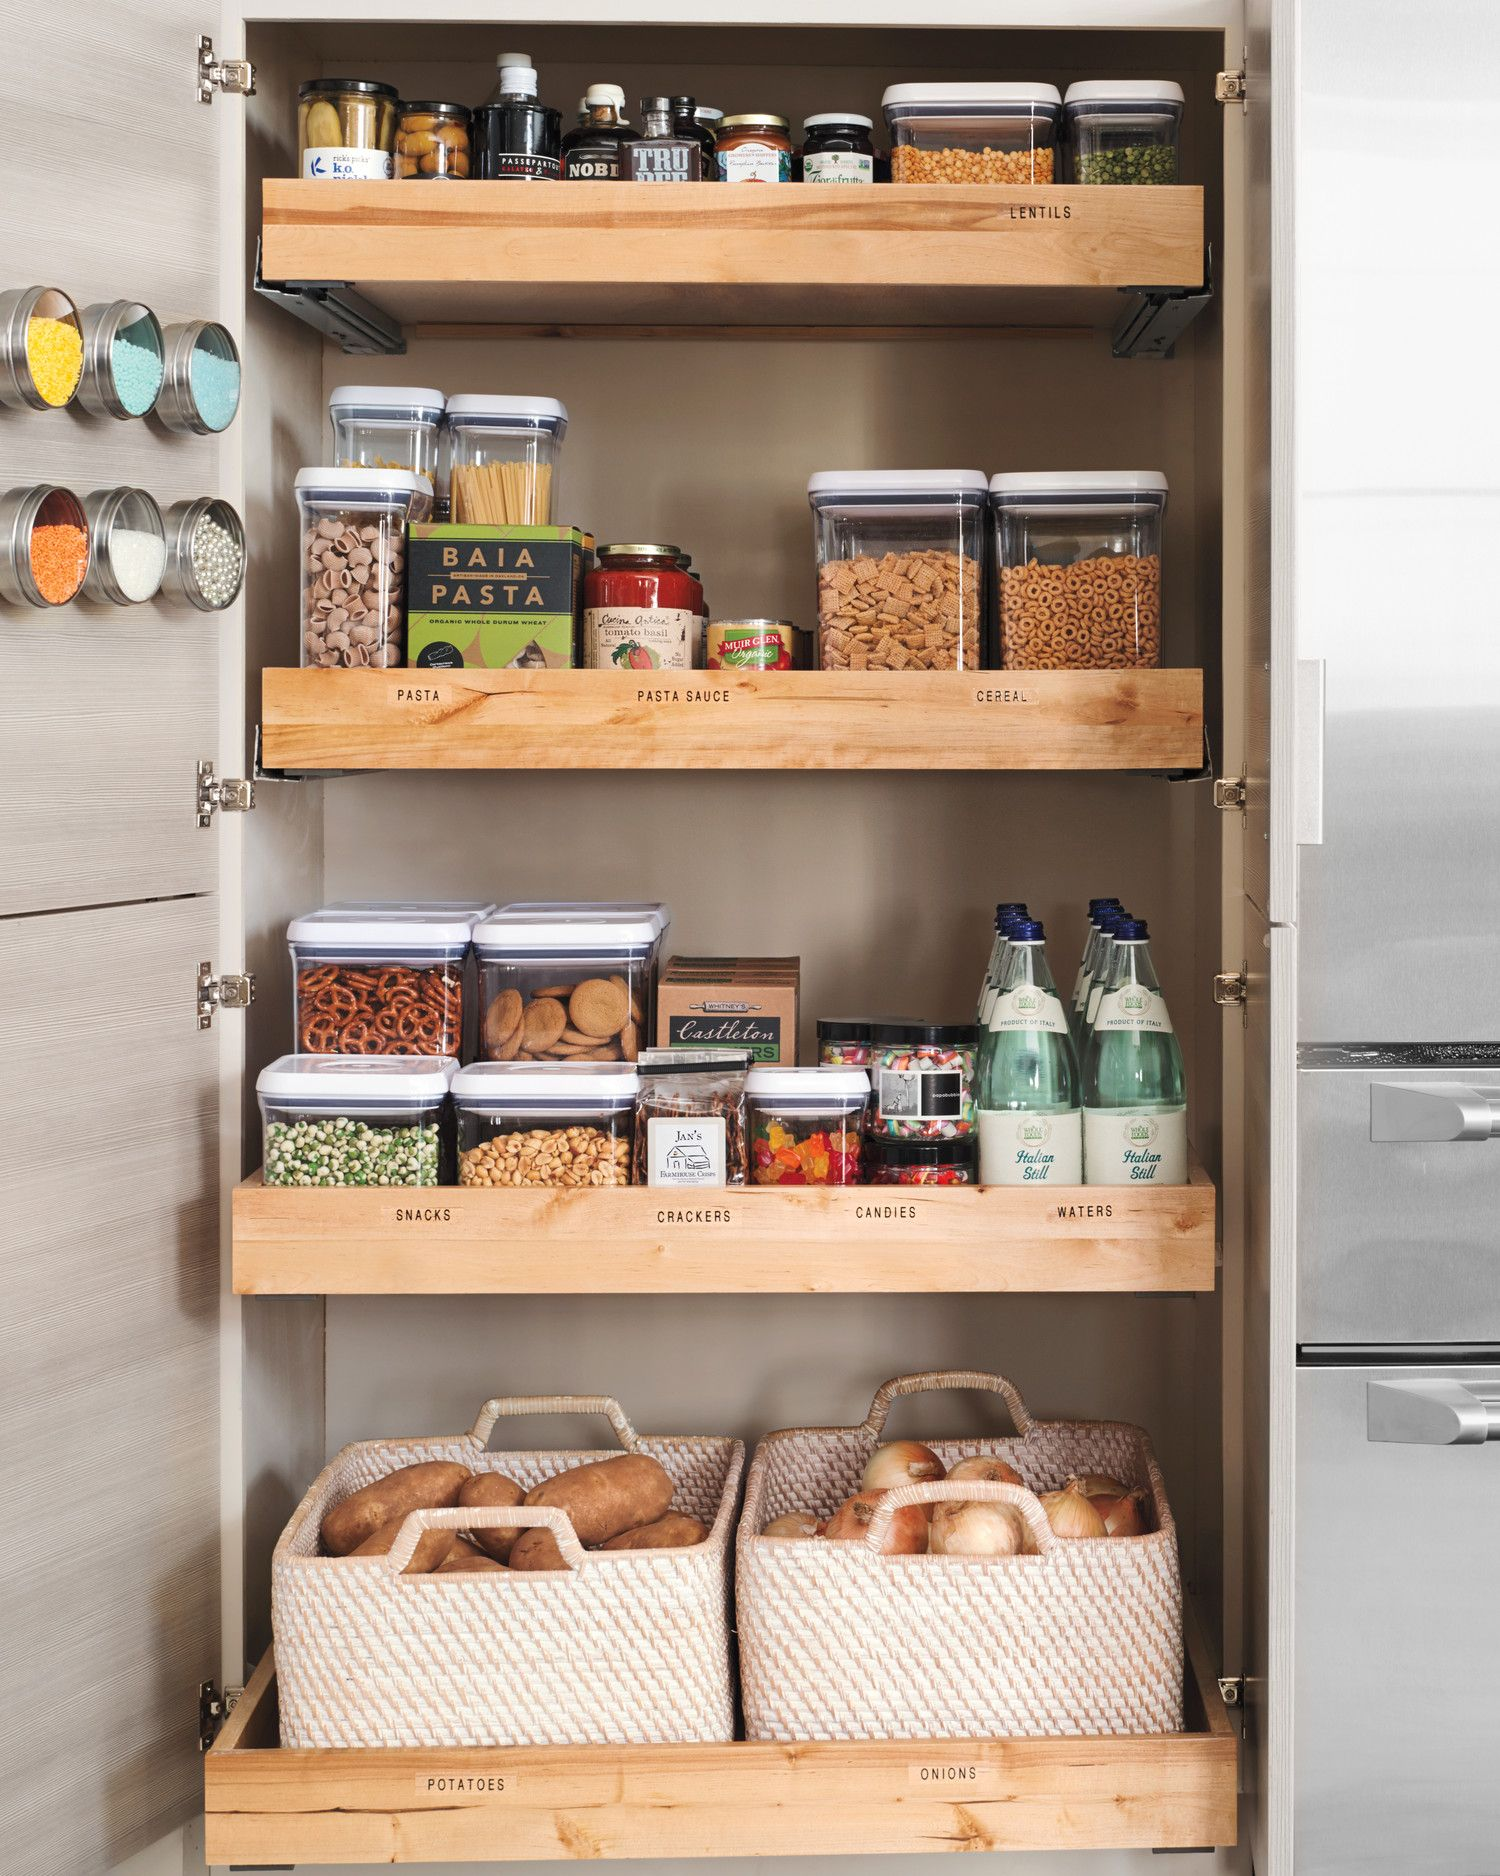 Organize Your Kitchen Cabinets in 11 Easy Steps | Cleaning ...